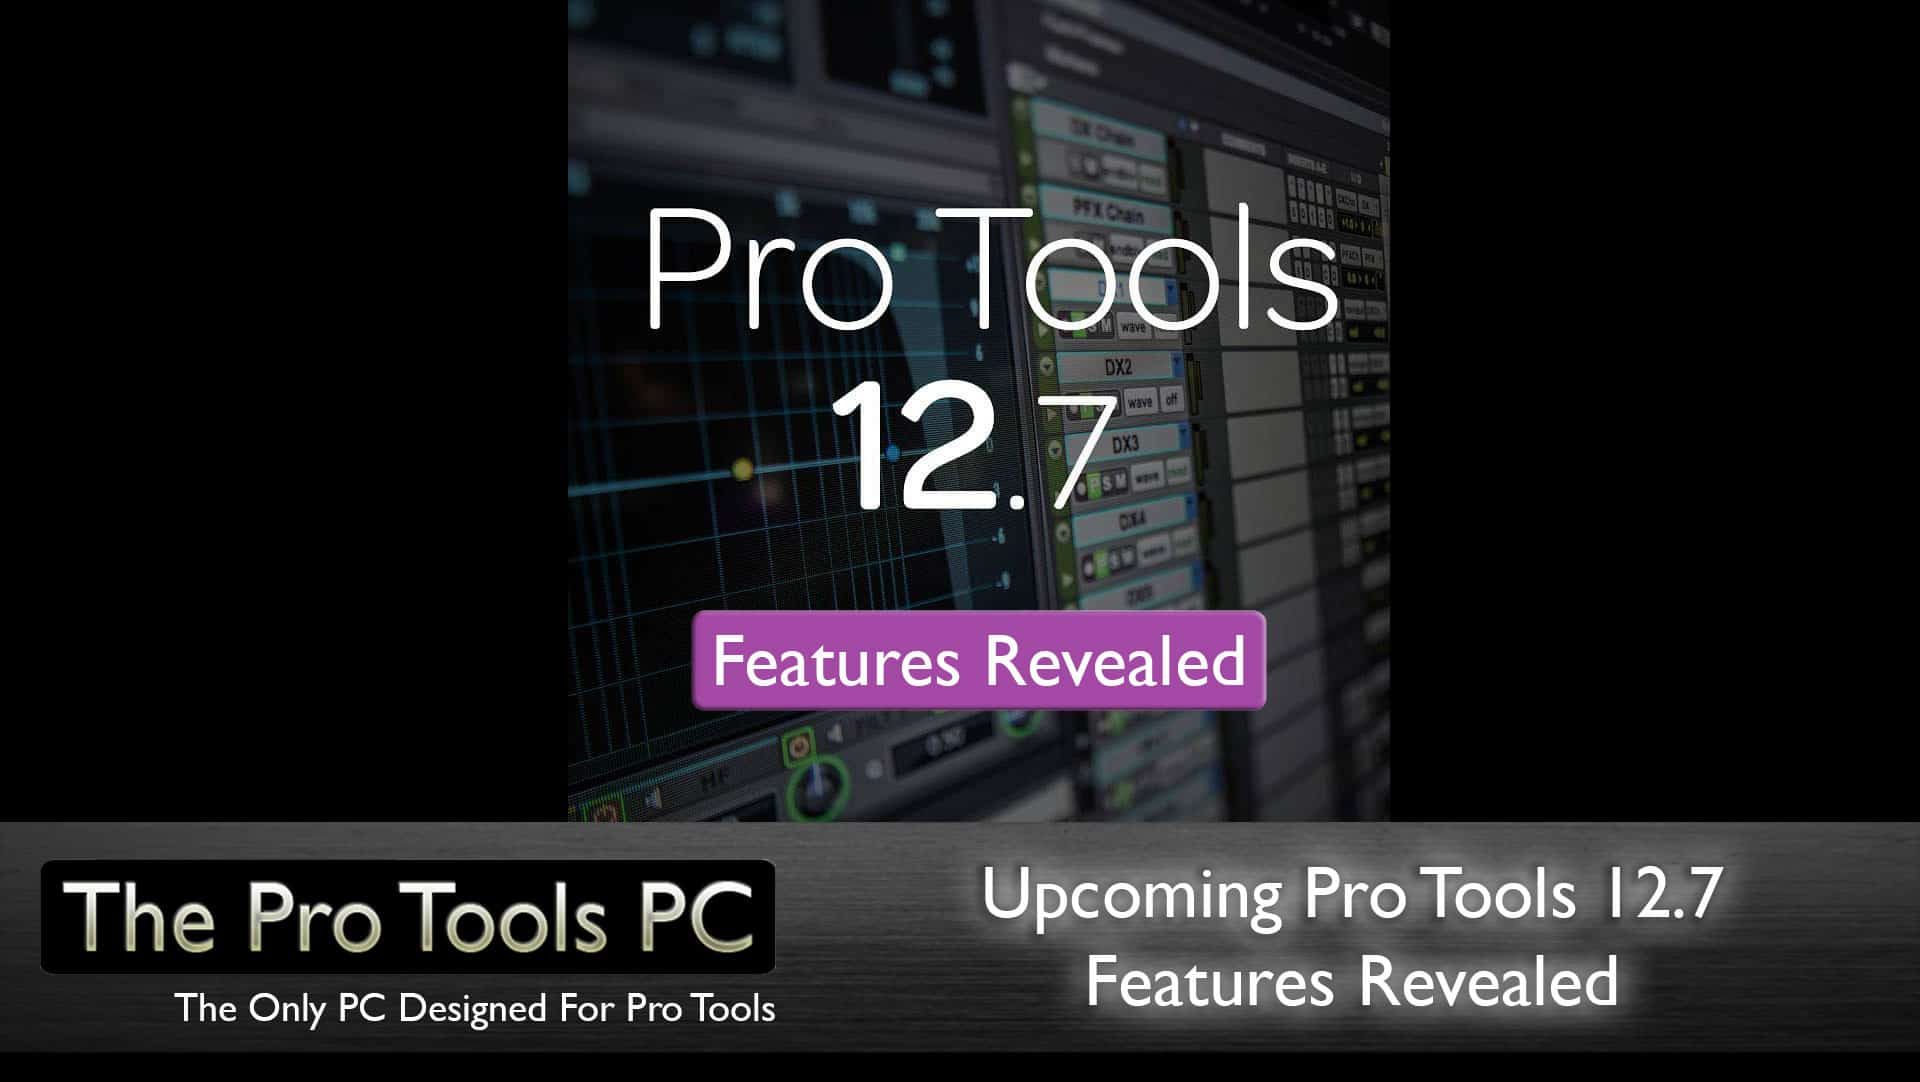 Pro Tools 12.7 Features